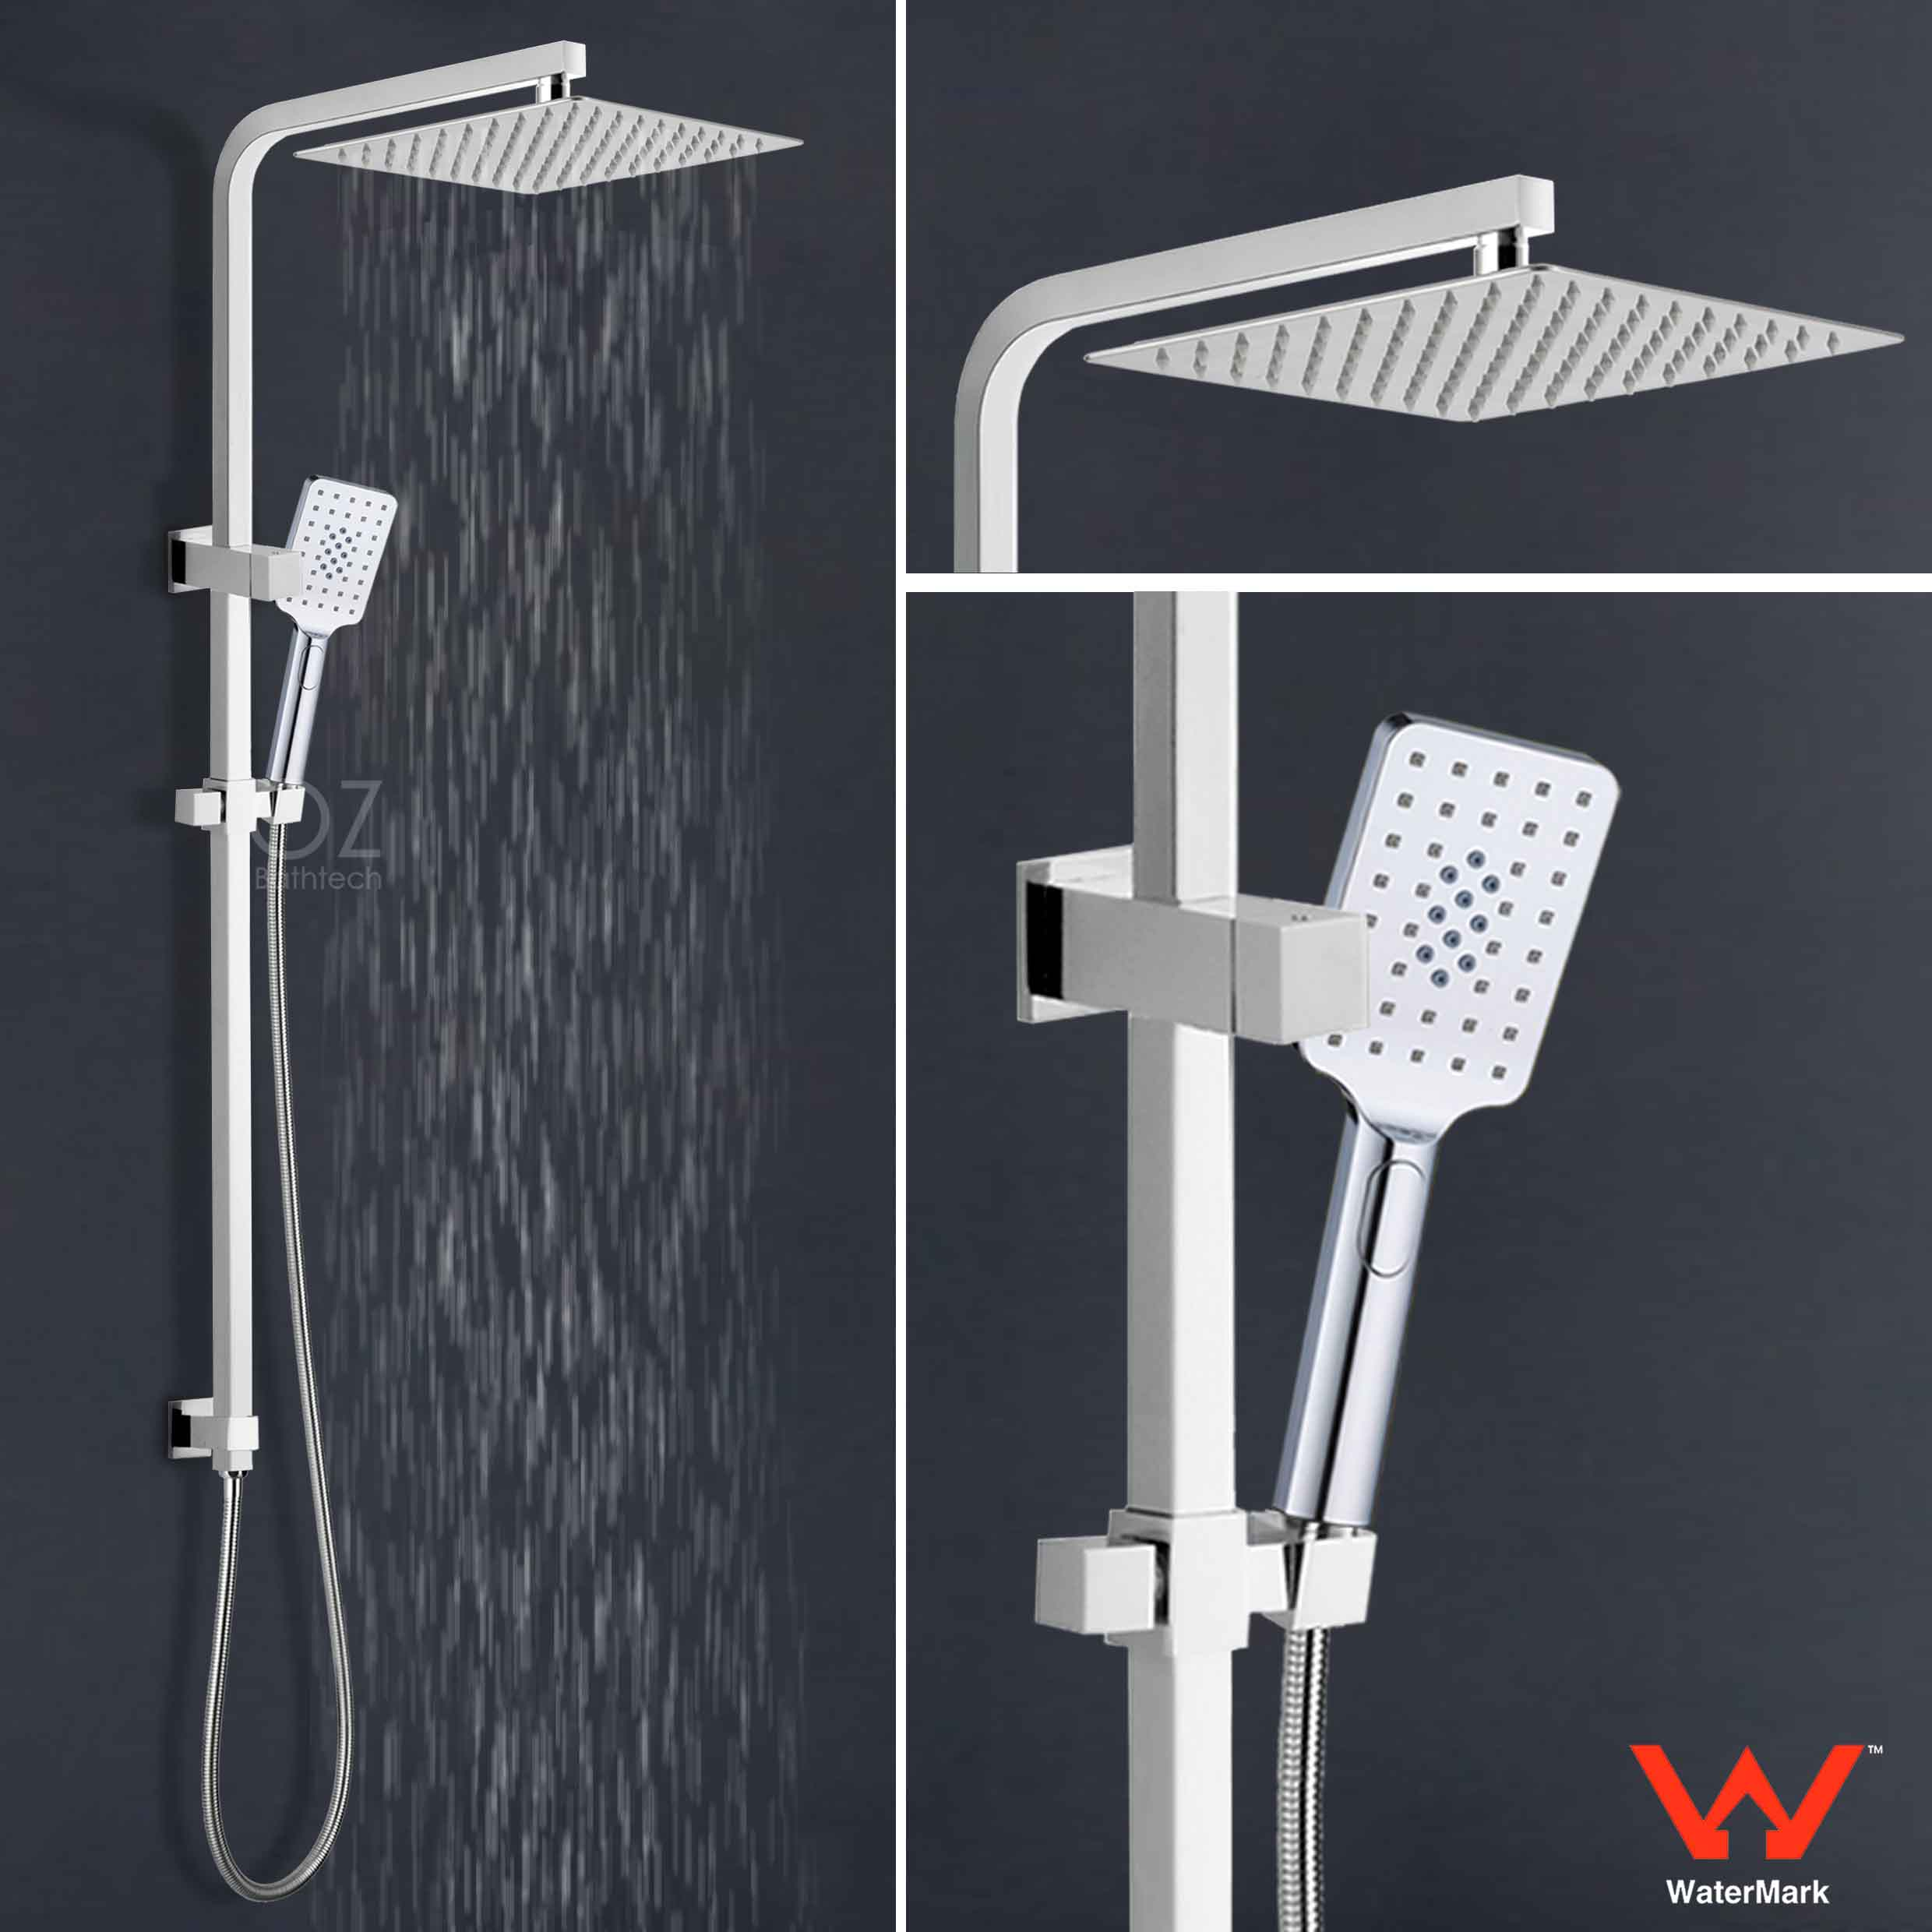 Details About 12 Inch Square Slim Rain Shower Head 3 Jet Hand Held Diverter Rail Mixer Valve